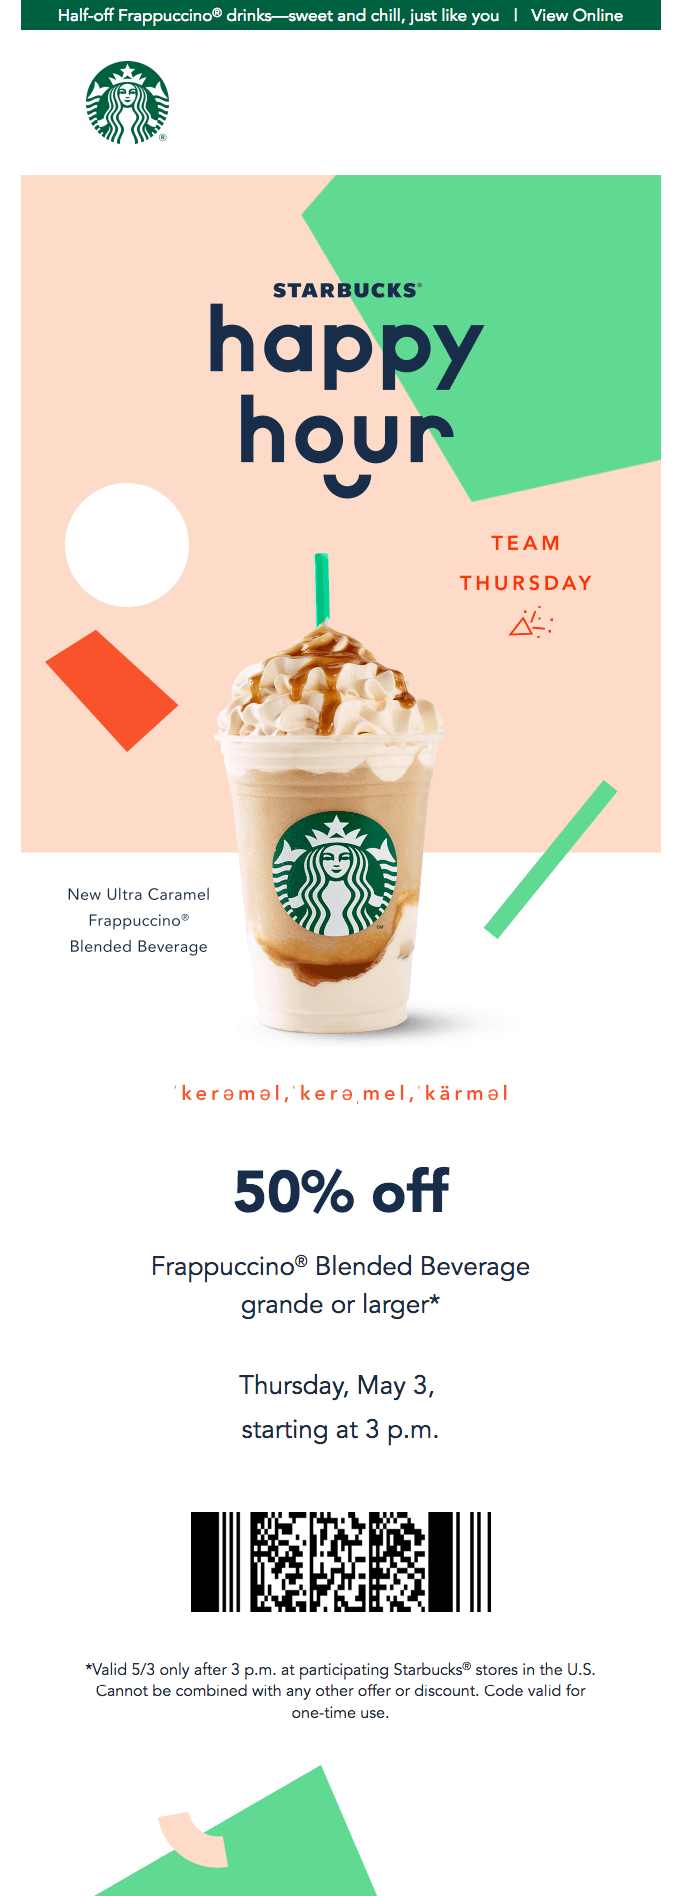 Starbucks retention email